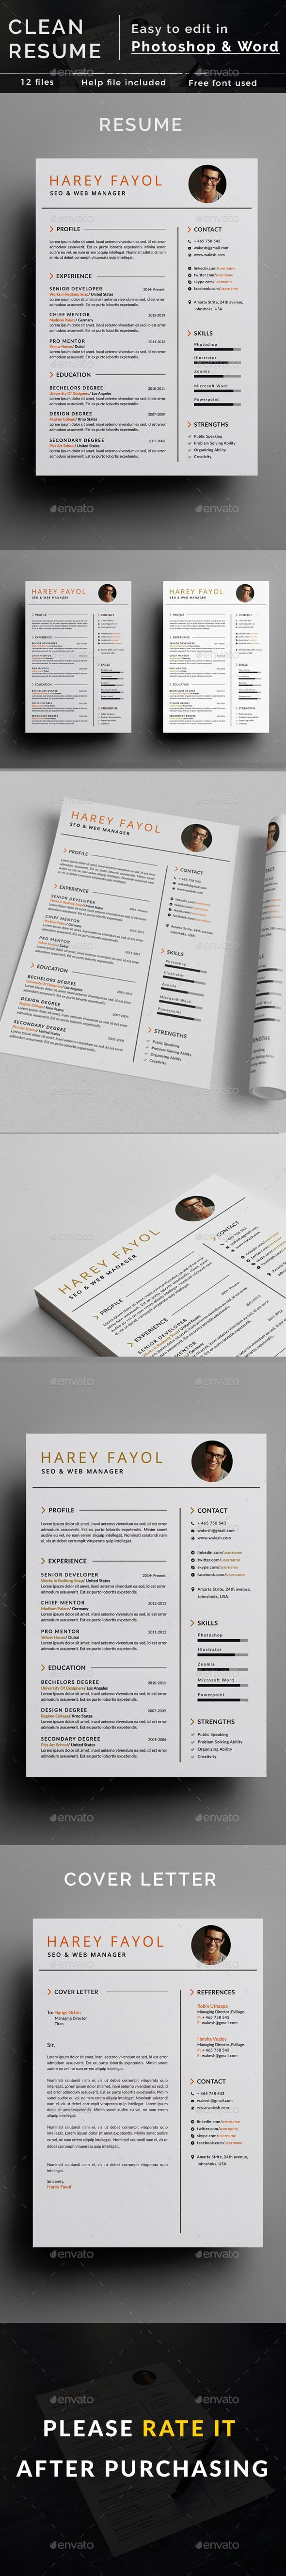 Clean Resume by reeshat Features 300dpi A4